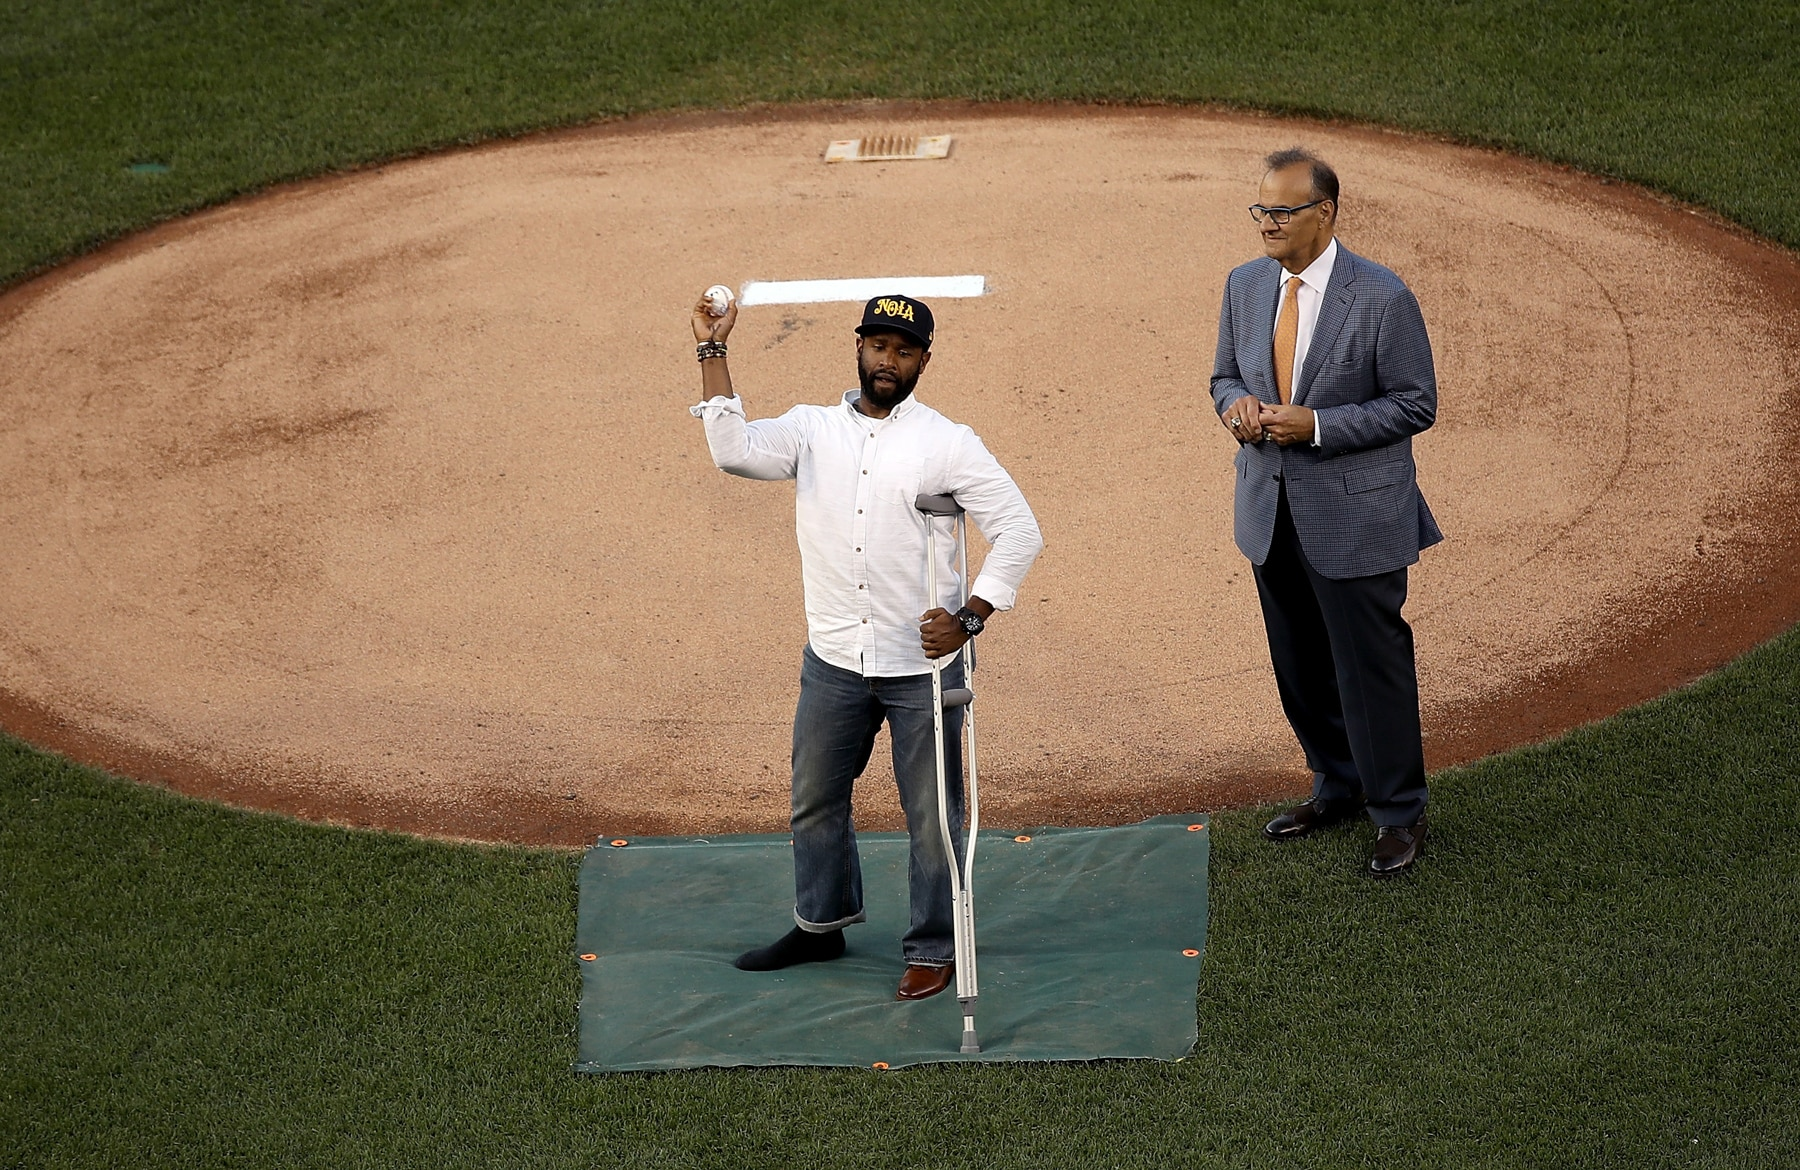 Man with crutch throwing baseball from near pitcher's mound (© Getty Images)